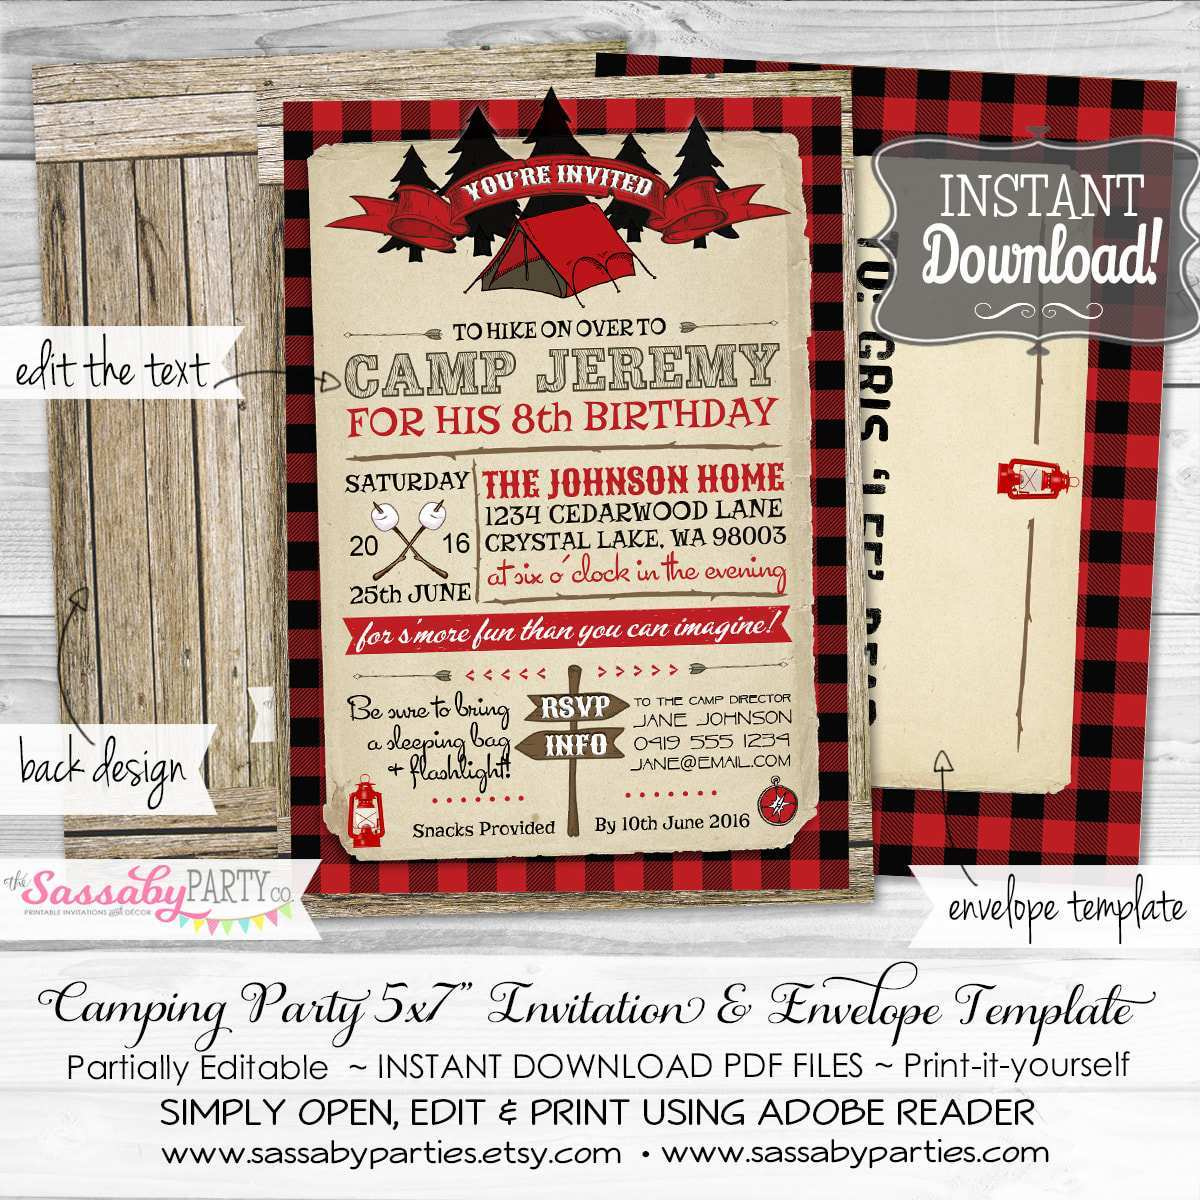 16 Customize Party Invitation Envelope Template for Ms Word with Party Invitation Envelope Template